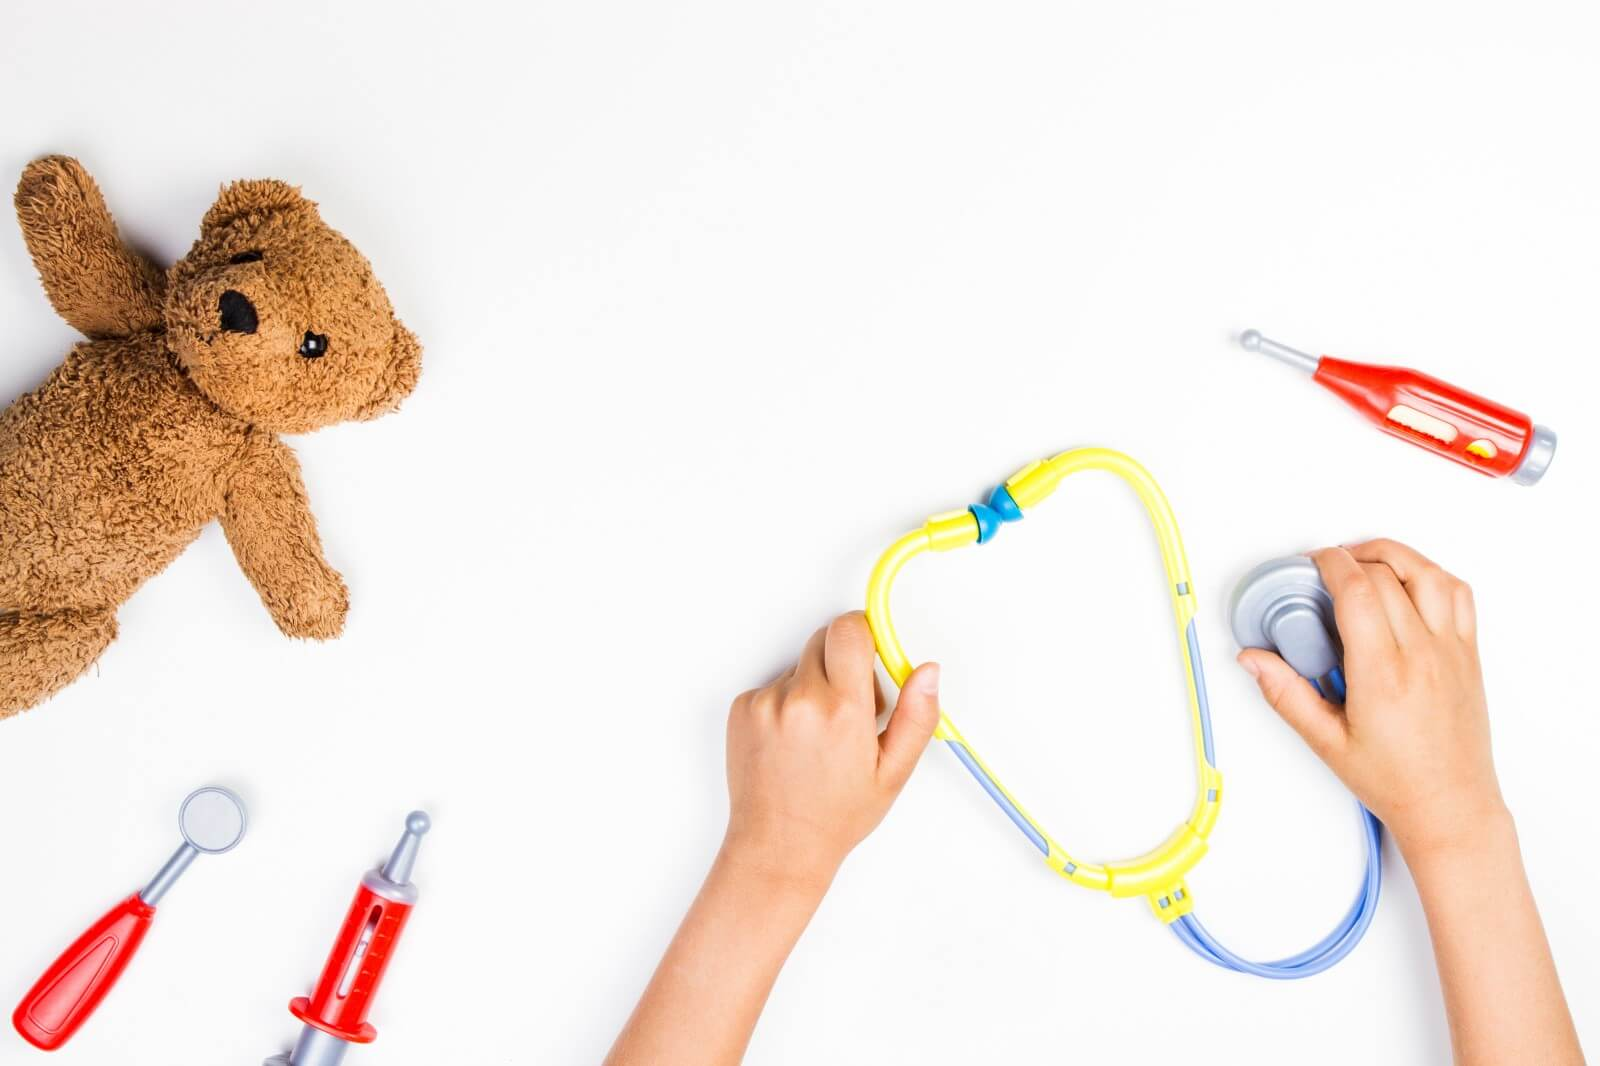 Child's hands holding toy stethoscope surrounded by toy medical equipment and a stuffed bear